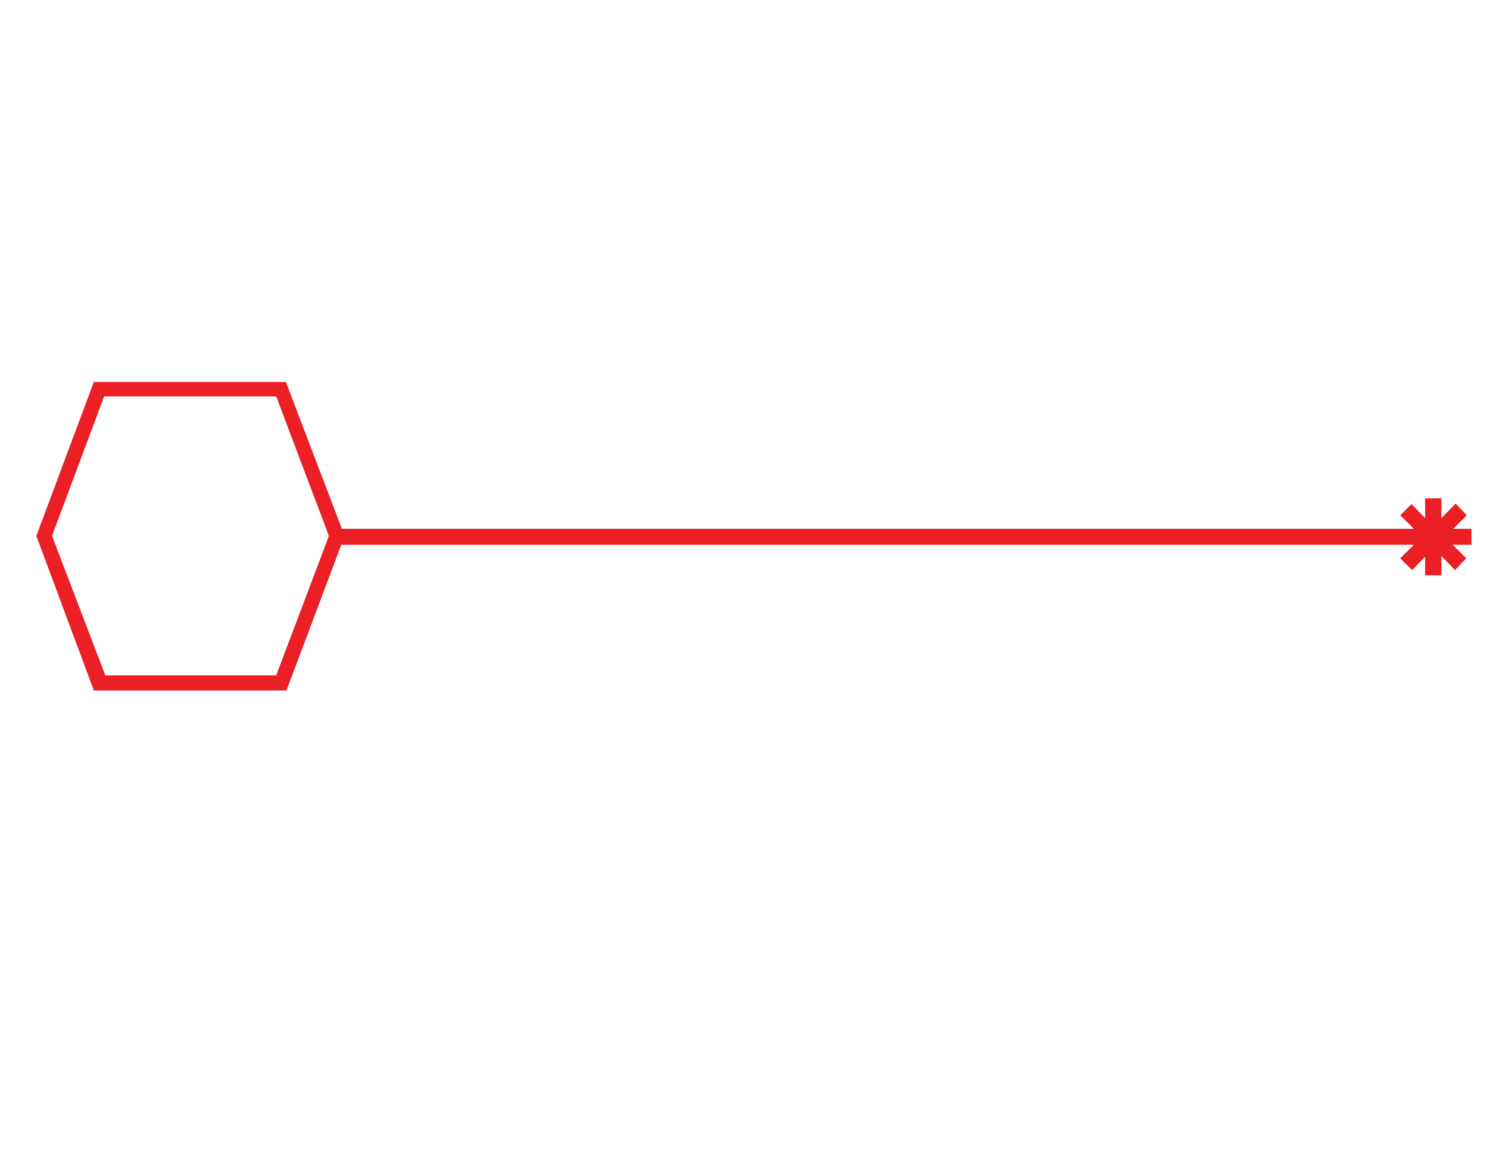 AA Welding Supply